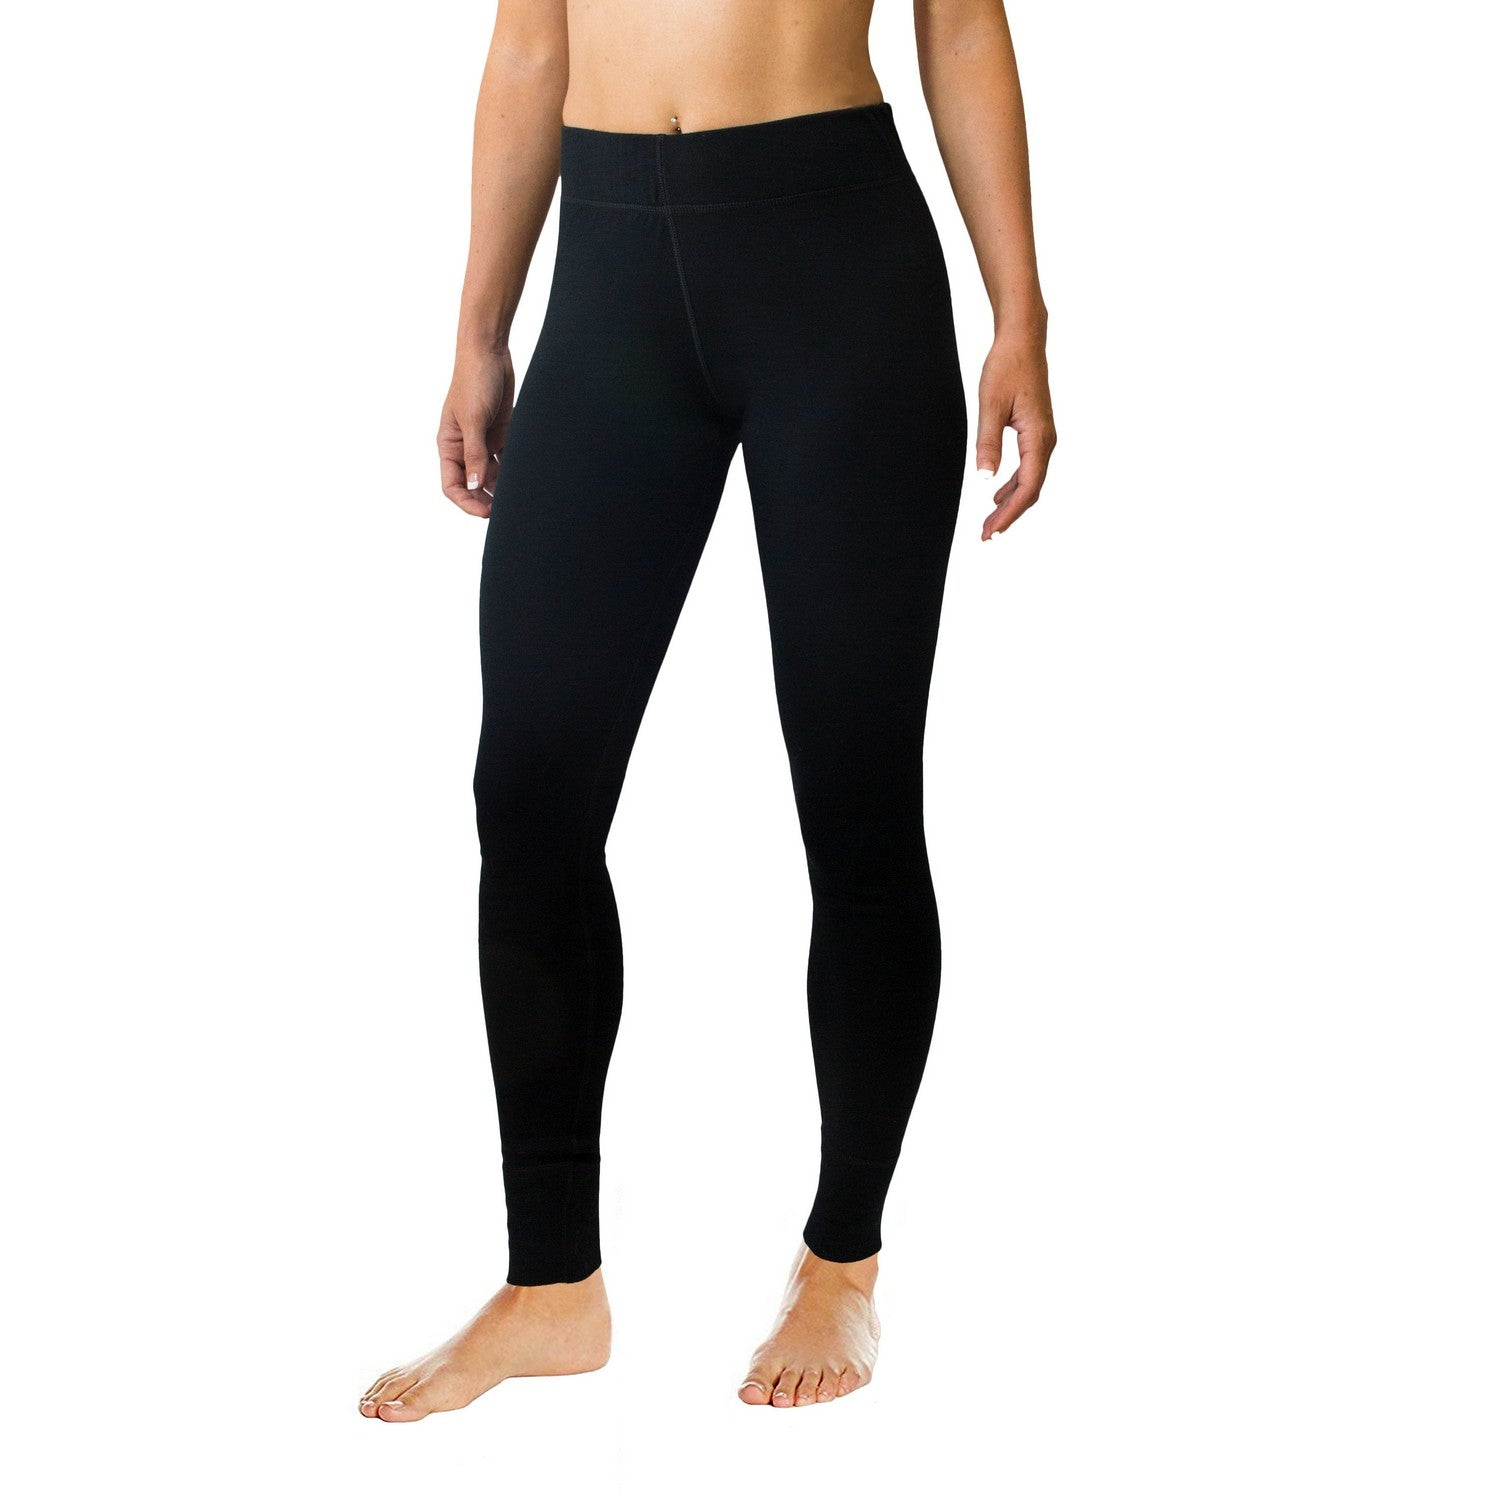 6961df2309051 Warmest Merino Wool Leggings for Women - Merino Wool Base Layer Pants